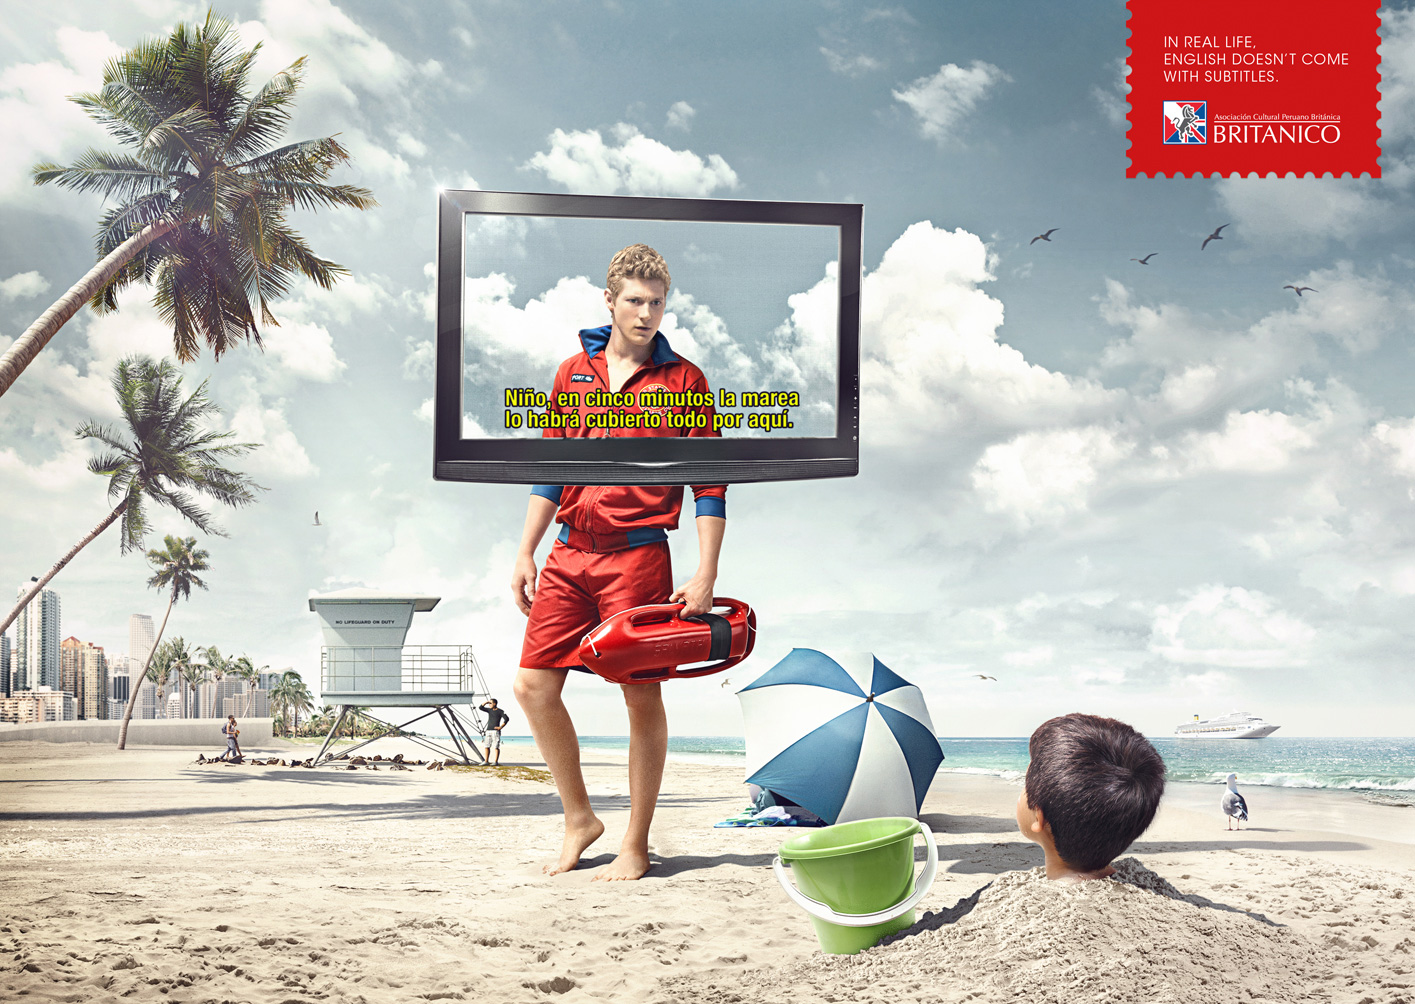 tv advertisement thesis Television has been a staple in advertising since its inception audiences tune in and engage with televised content while attracting advertisers during major televised events like the super bowl.